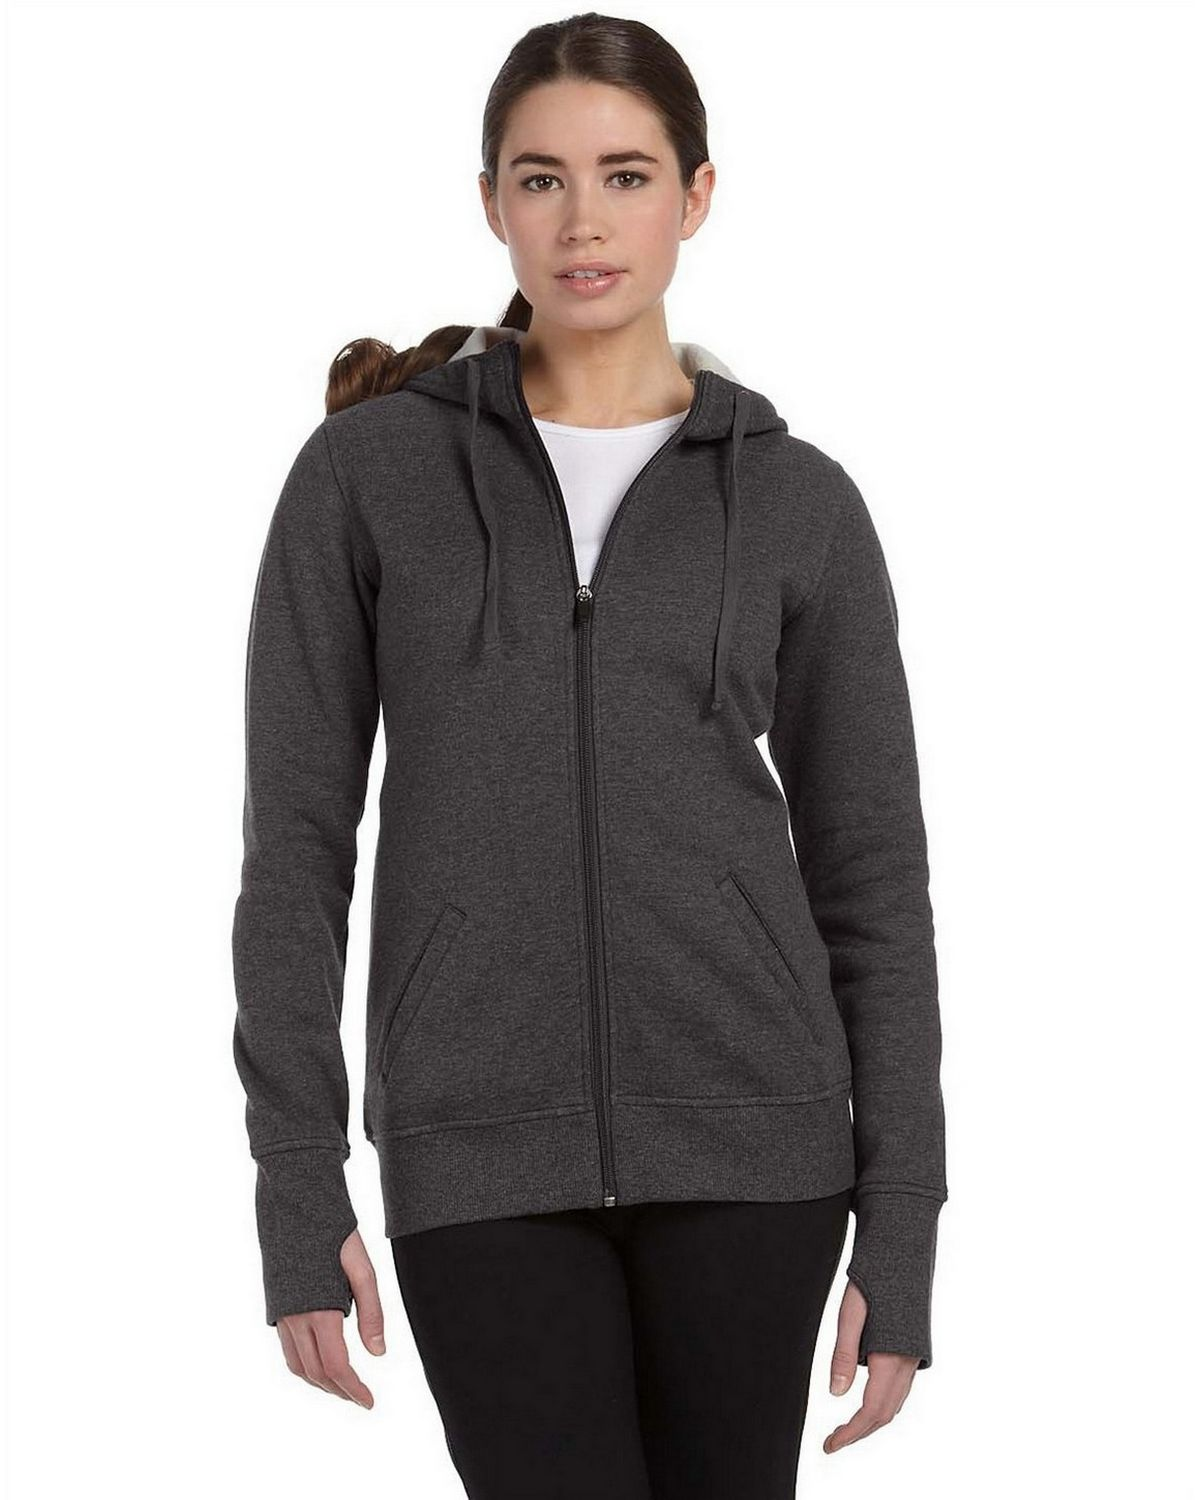 All Sport W4010 Performance Fleece Full-Zip Hoodie - Dark Grey Heather - XL W4010